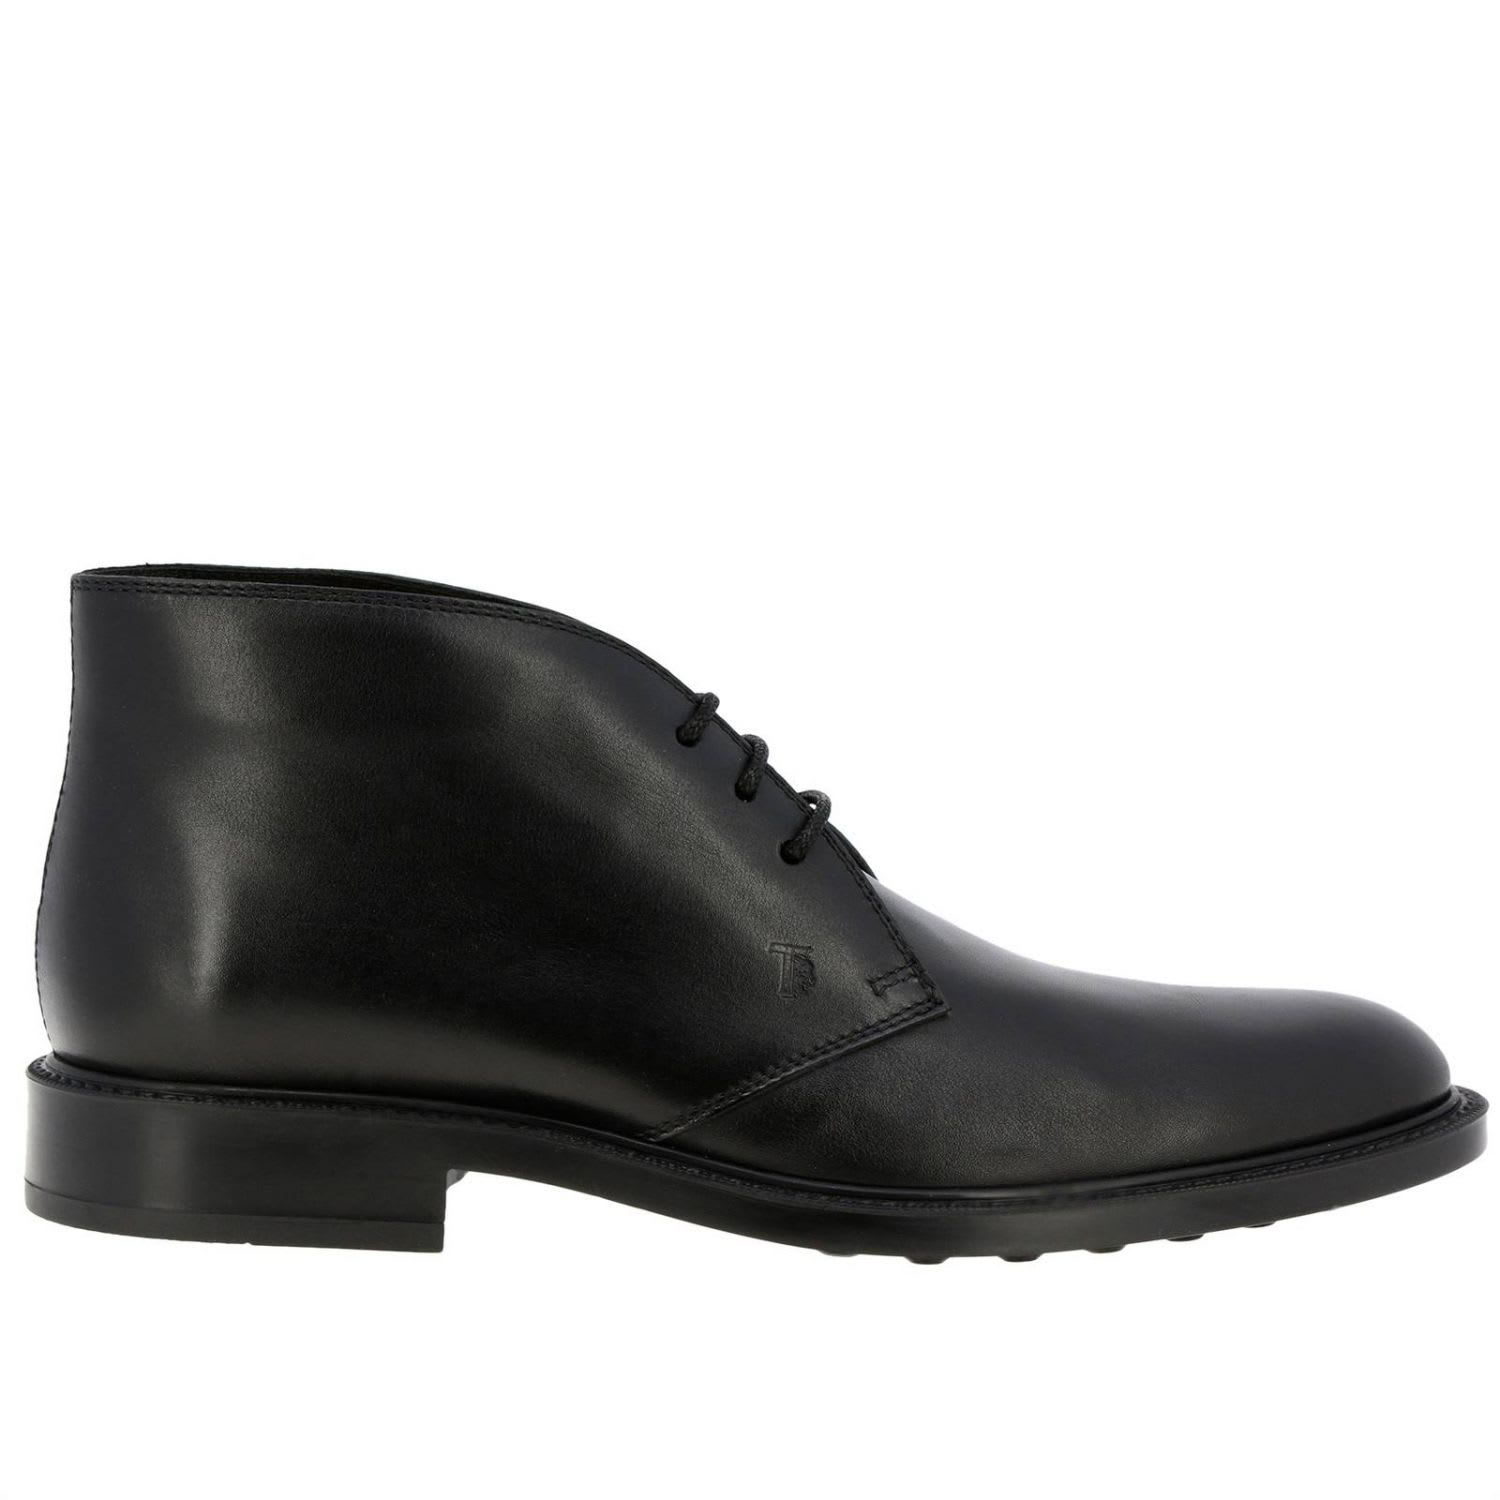 Tods Chukka Boots Tods Lace-up Boots In Smooth Leather With Rubber Sole